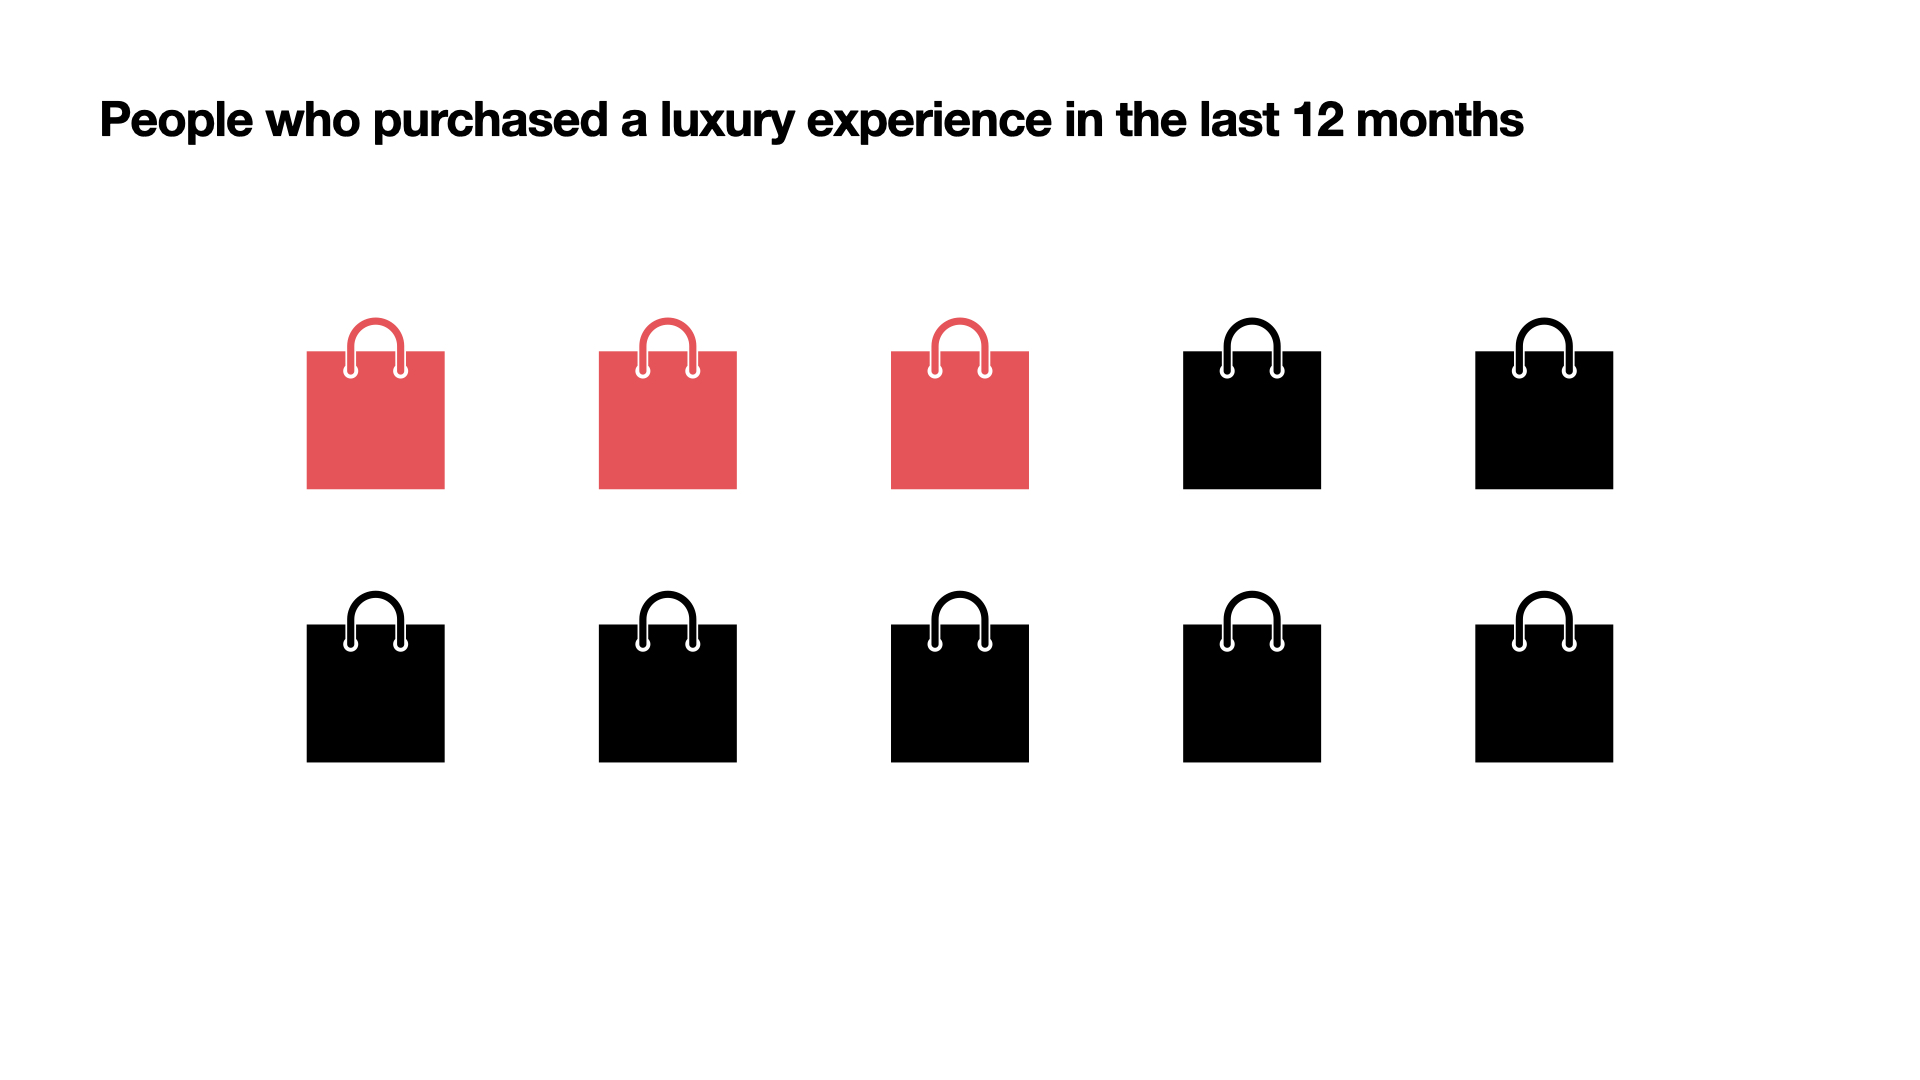 G & Co. is a luxury marketing agency: 3 in 10 people purchased a luxury experience in the last 12 months